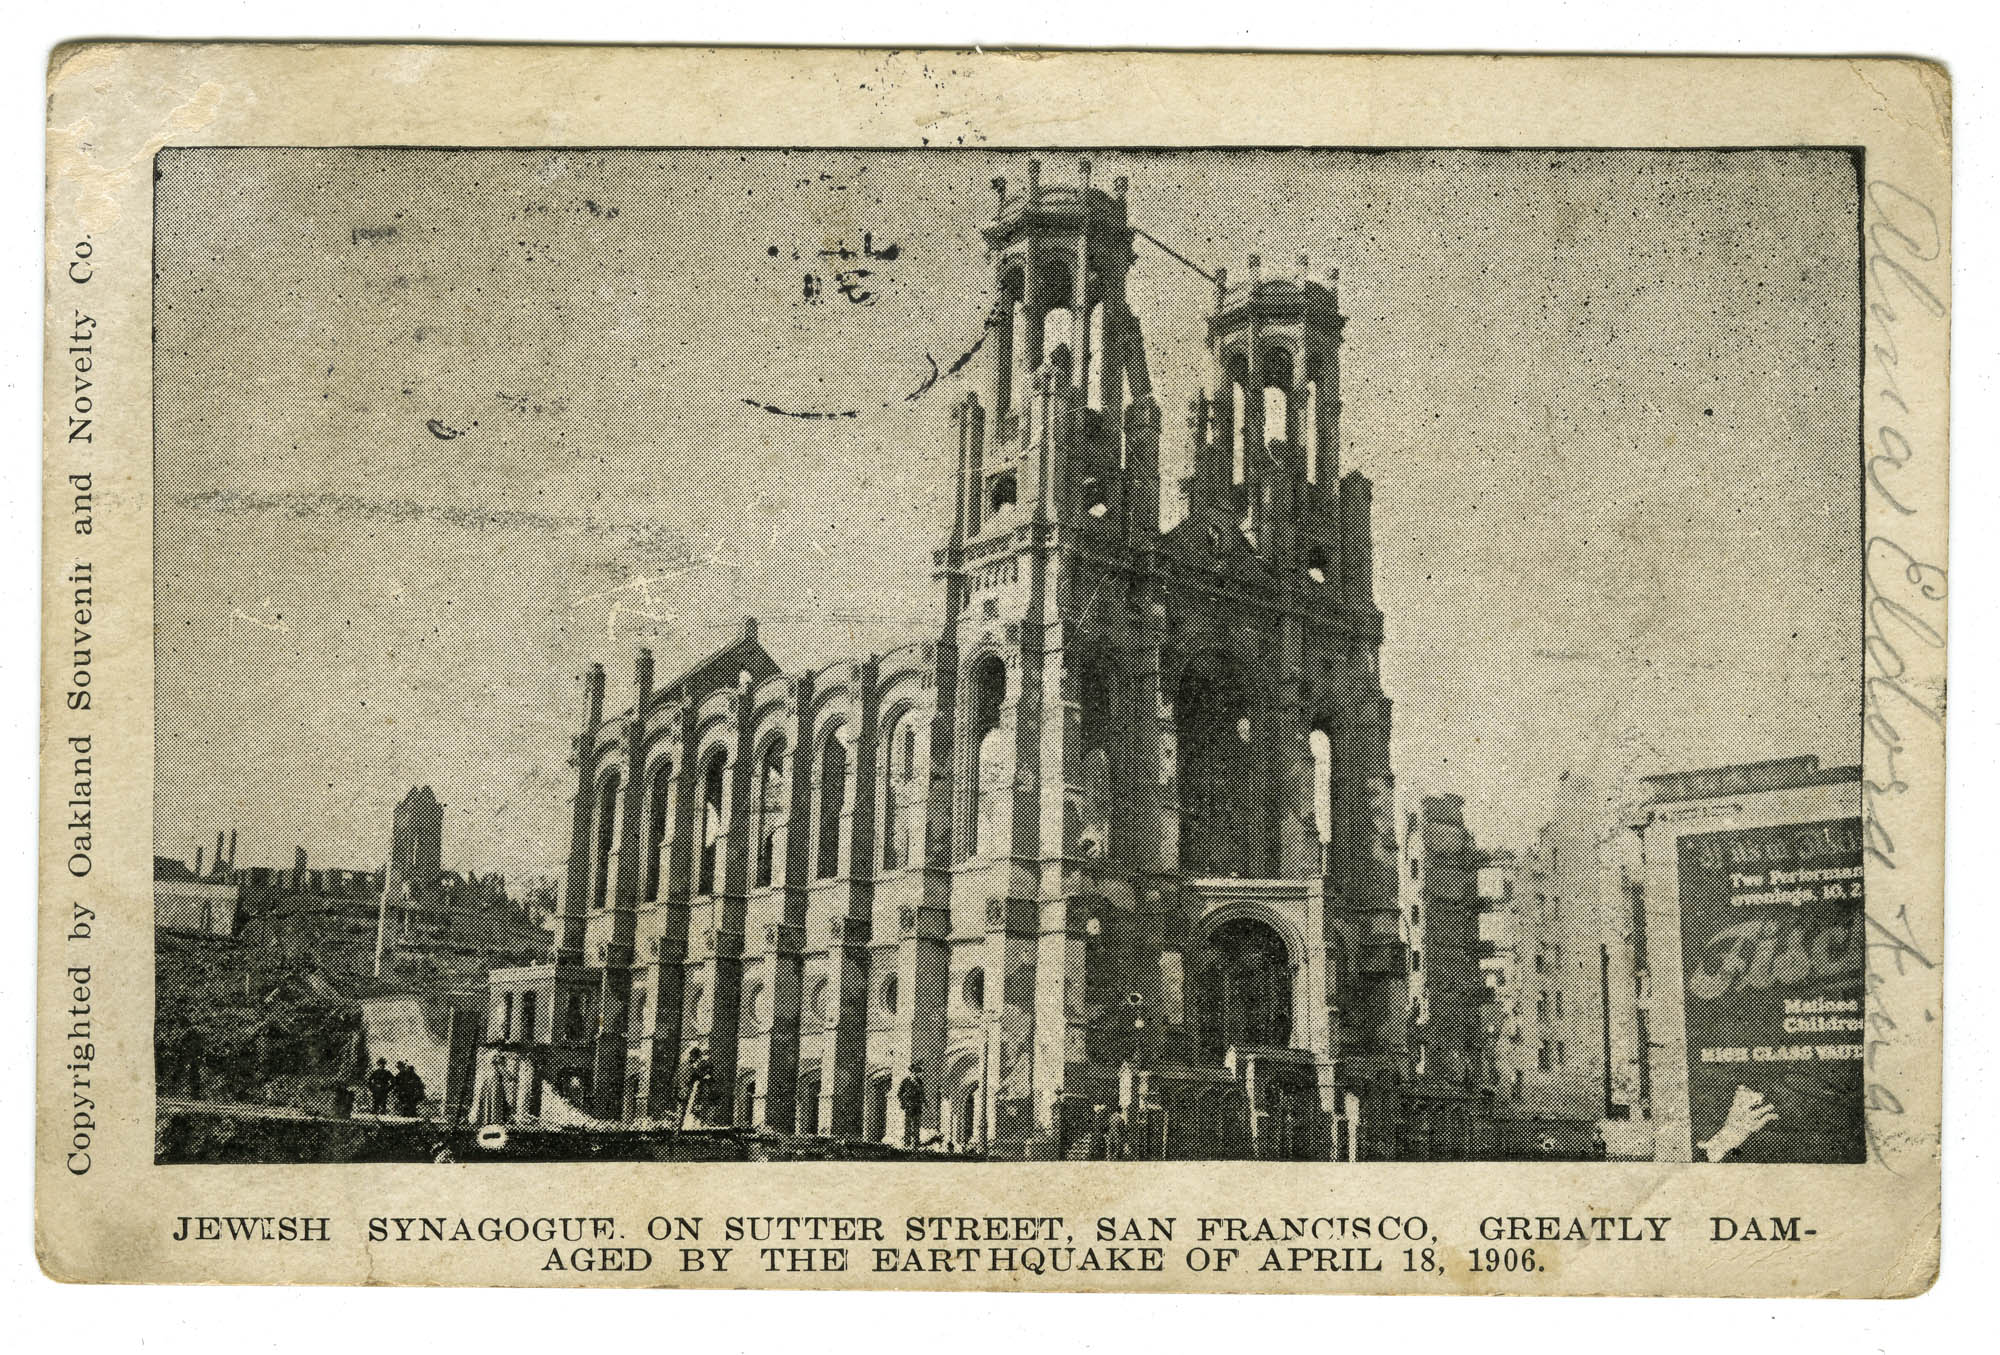 Jewish synagogue on Sutter Street, San Francisco, greatly damaged by the earthquake of April 18, 1906